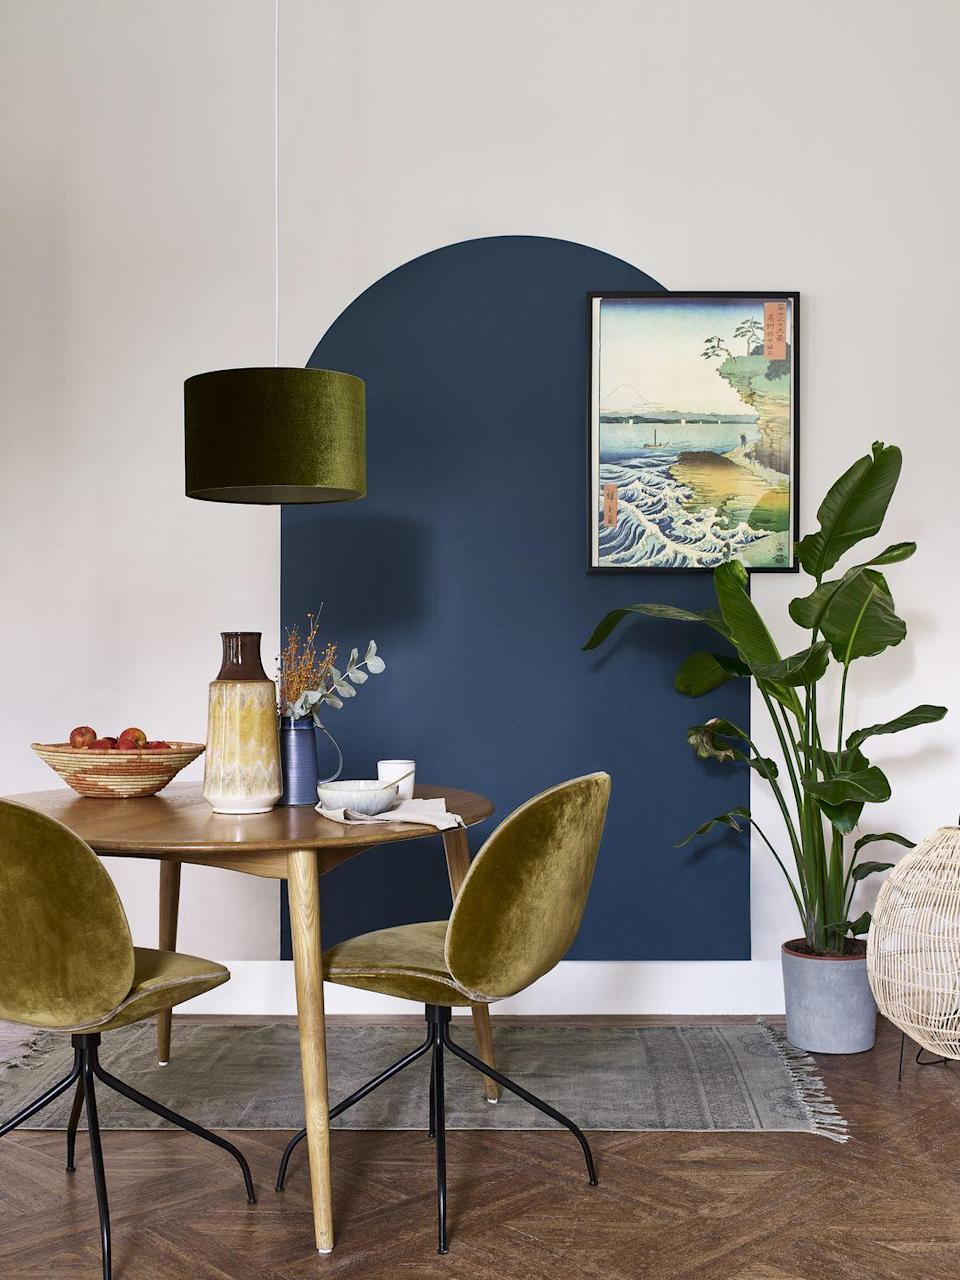 """<p>Geometric paint patterns have become hugely popular – it's a simple, low cost way to create something truly unique. They come in at second on Dulux's list, being featured in 47 per cent of top posts.</p><p>'From simple minimalist designs, to bold and beautiful shapes filling entire walls, all it takes is some masking tape or homemade stencils and your choice of paint colours to create something eye-catching to put your own personal stamp on your home,' Dulux explains.</p><p><strong>READ MORE: <a href=""""https://www.housebeautiful.com/uk/decorate/looks/g30611534/geometric-patterns-shapes-room-decor-ideas/"""" rel=""""nofollow noopener"""" target=""""_blank"""" data-ylk=""""slk:Modern geometric room decor ideas"""" class=""""link rapid-noclick-resp"""">Modern geometric room decor ideas</a></strong></p>"""